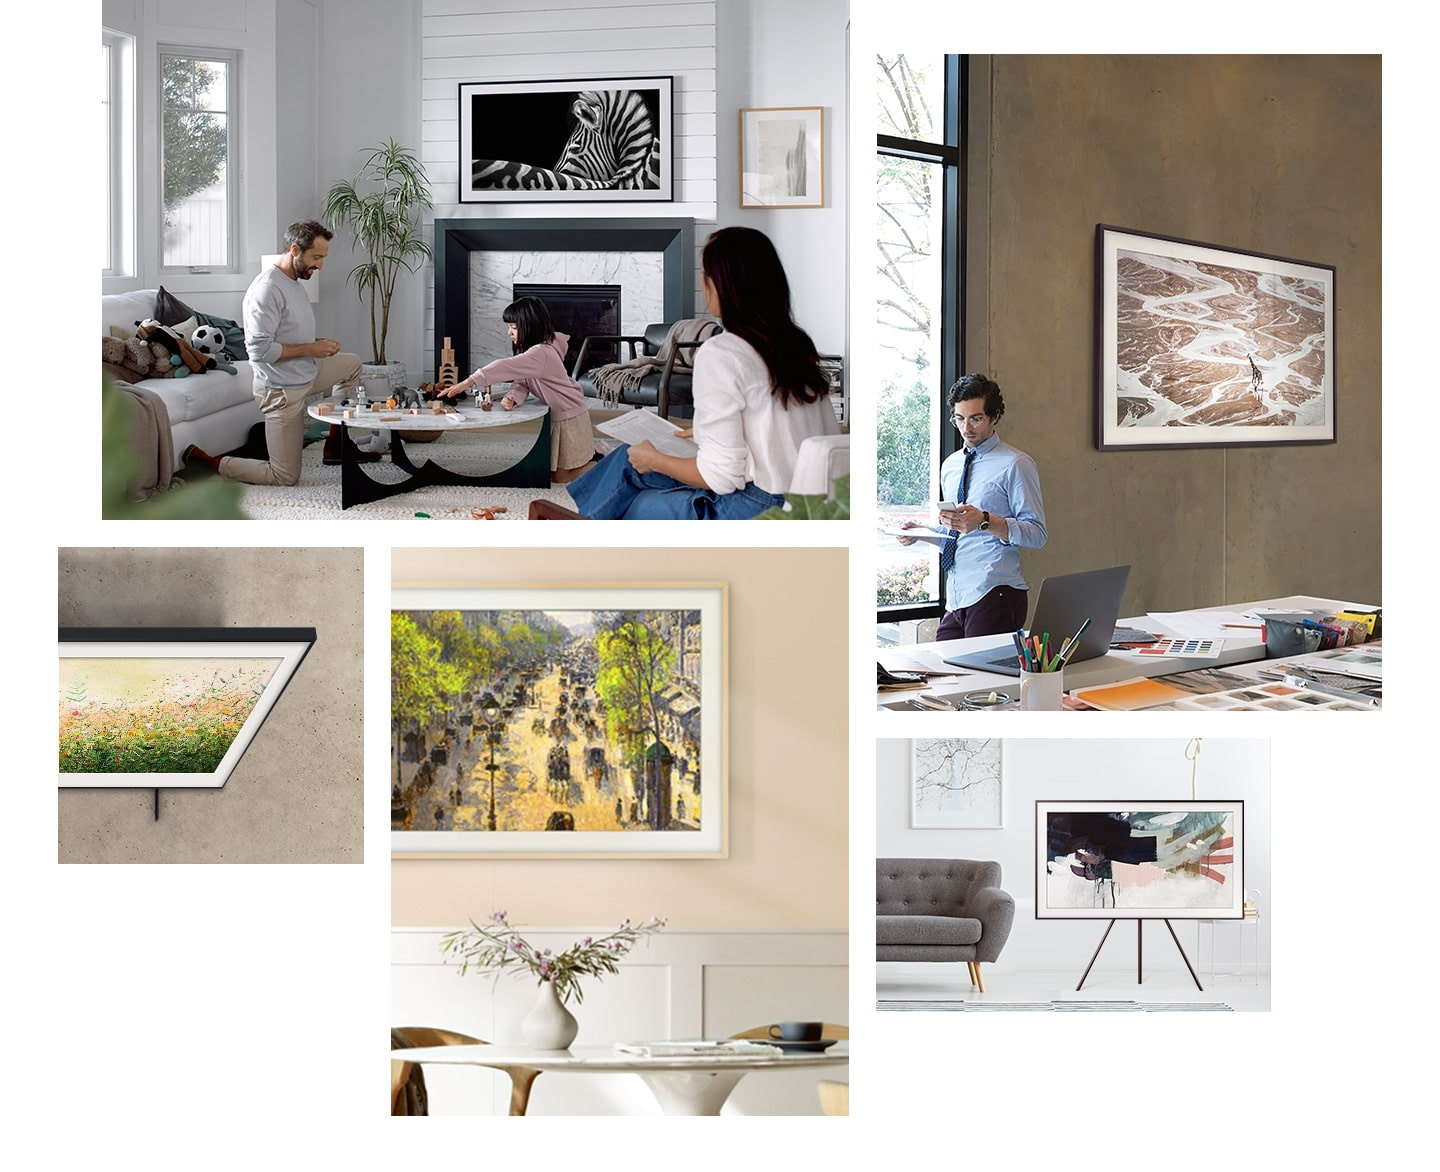 Samsung The Frame TV makes any space, from your living room to your office, look like a gallery because it goes well with any interior.